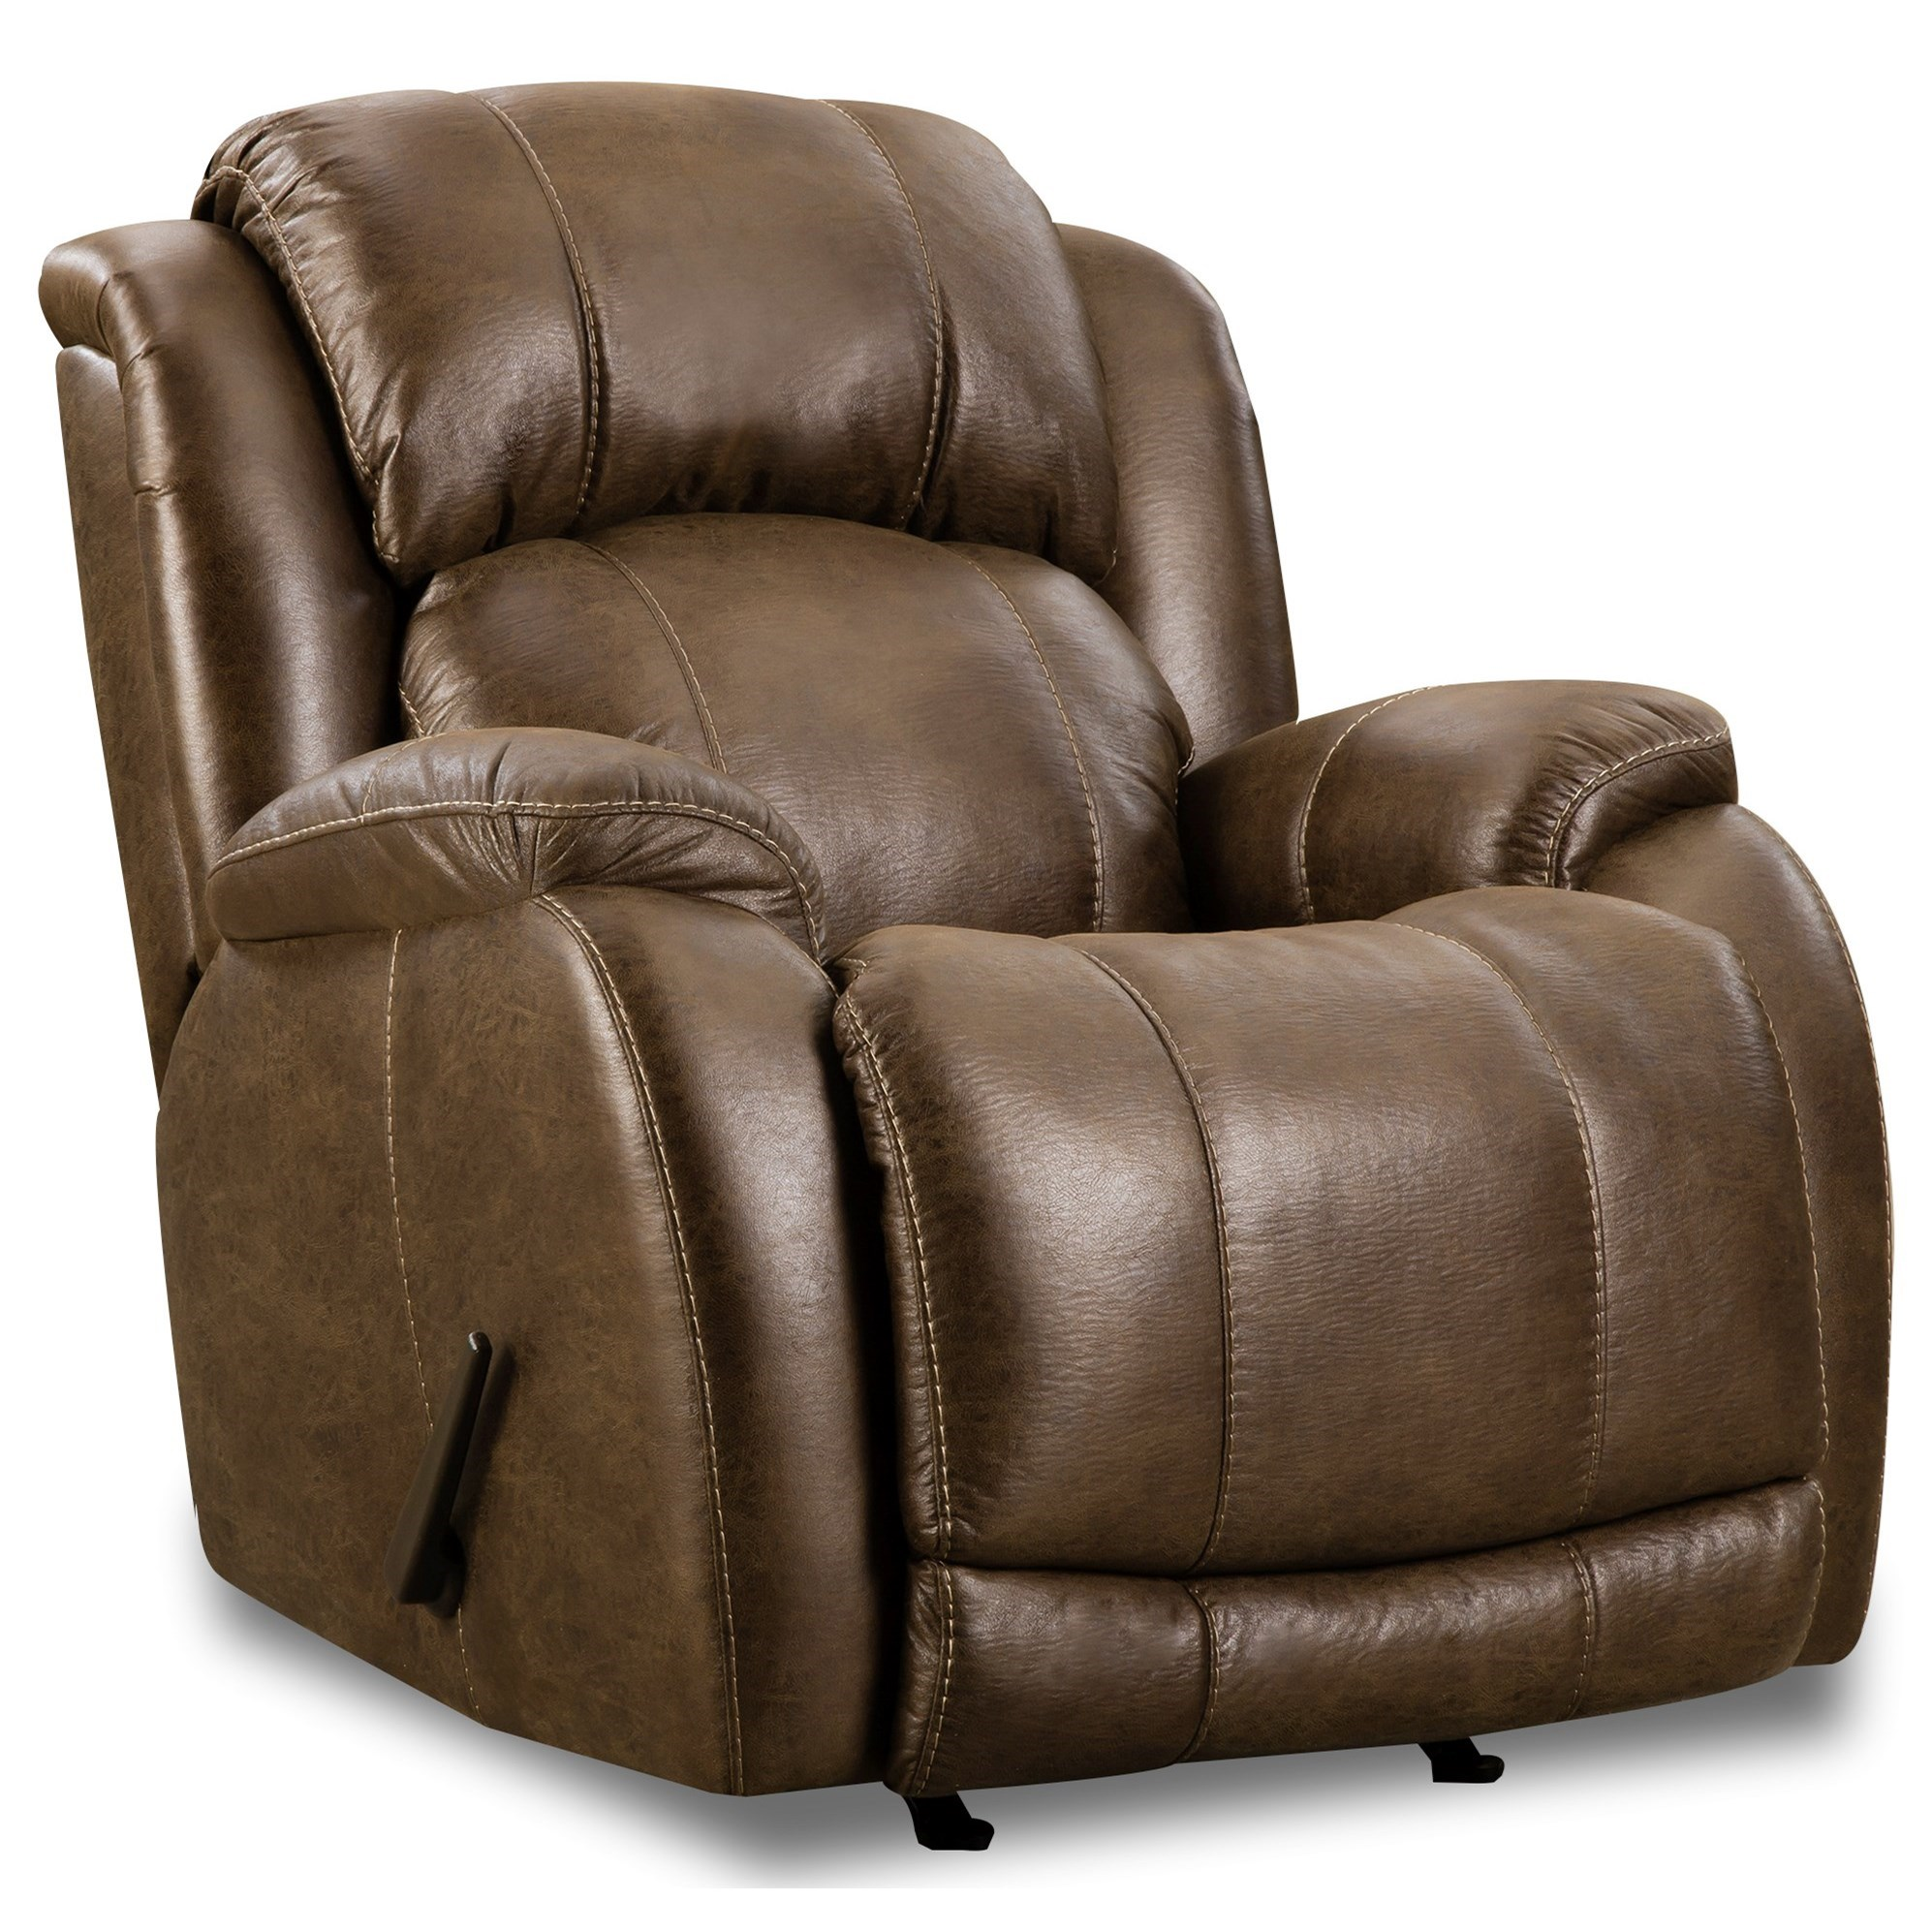 Denali Power Rocker Recliner at Prime Brothers Furniture